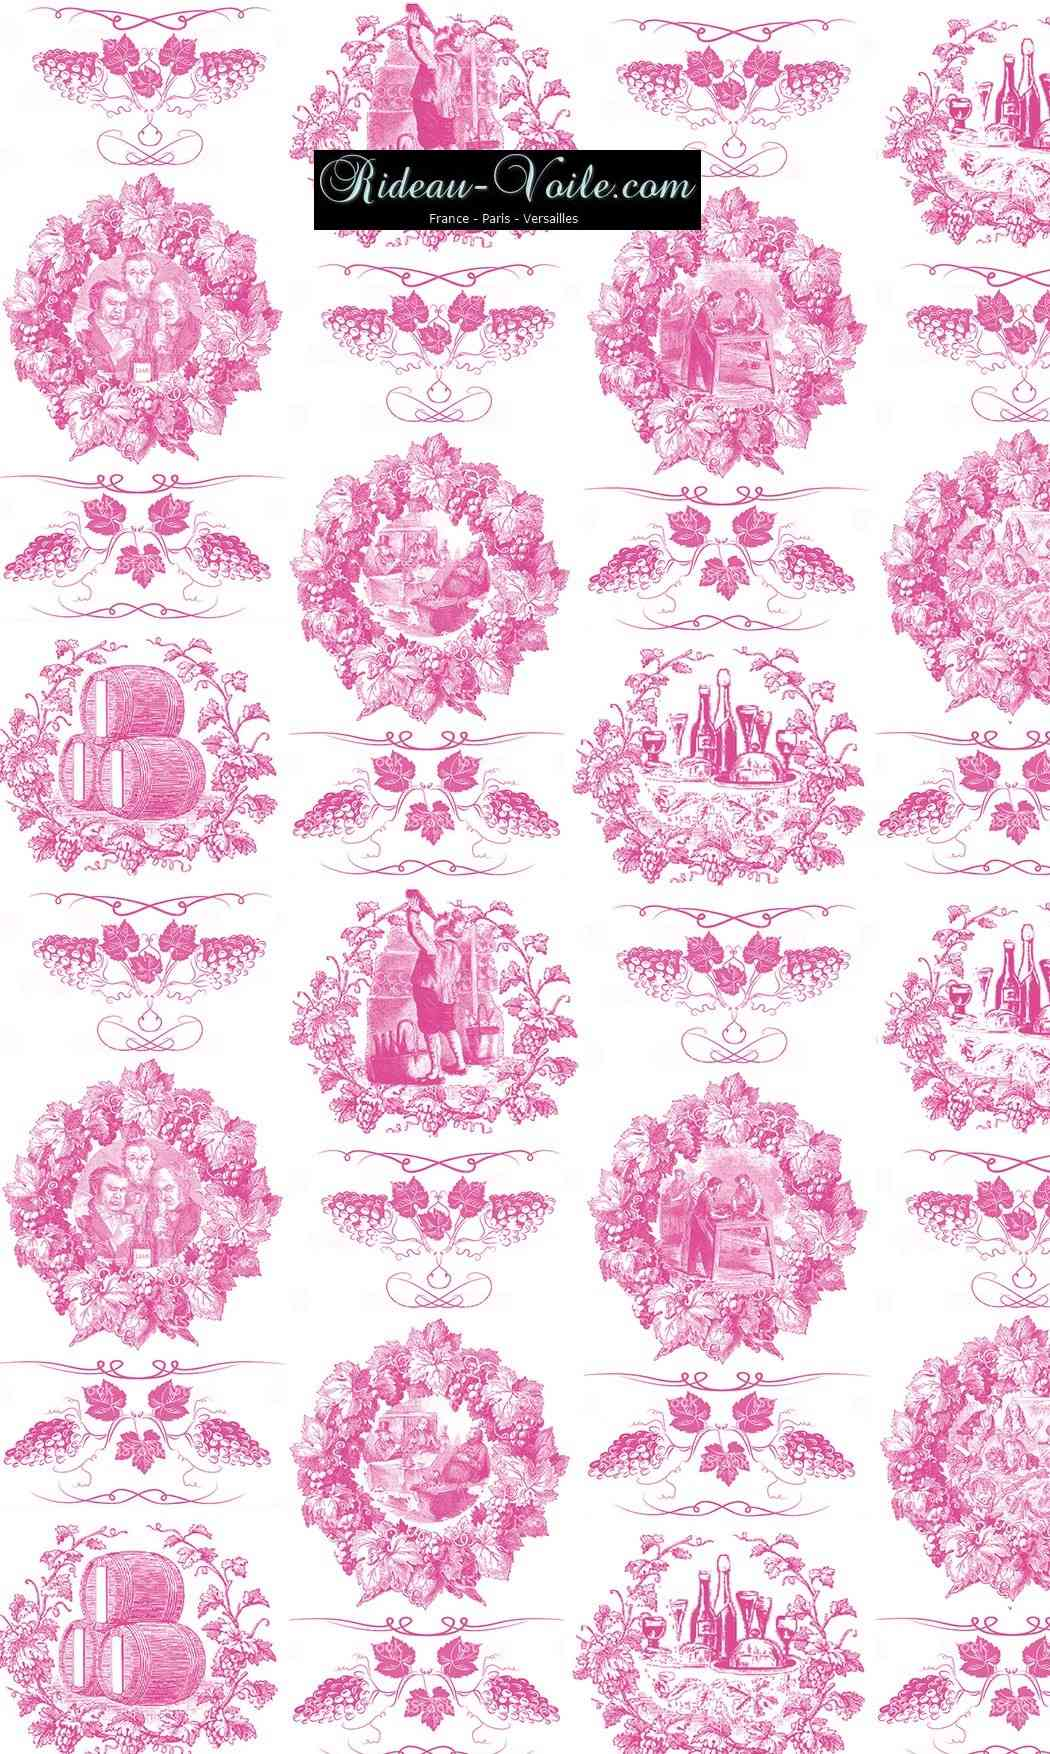 Toile de jouy tissu motif imprimé ameublement décoration tapisserie linge de maison housse coussin couette luxe lit fabric pattern printed home furnishing decoration tapestry linens cover cushion quilt luxury upholstery pink fushia rose